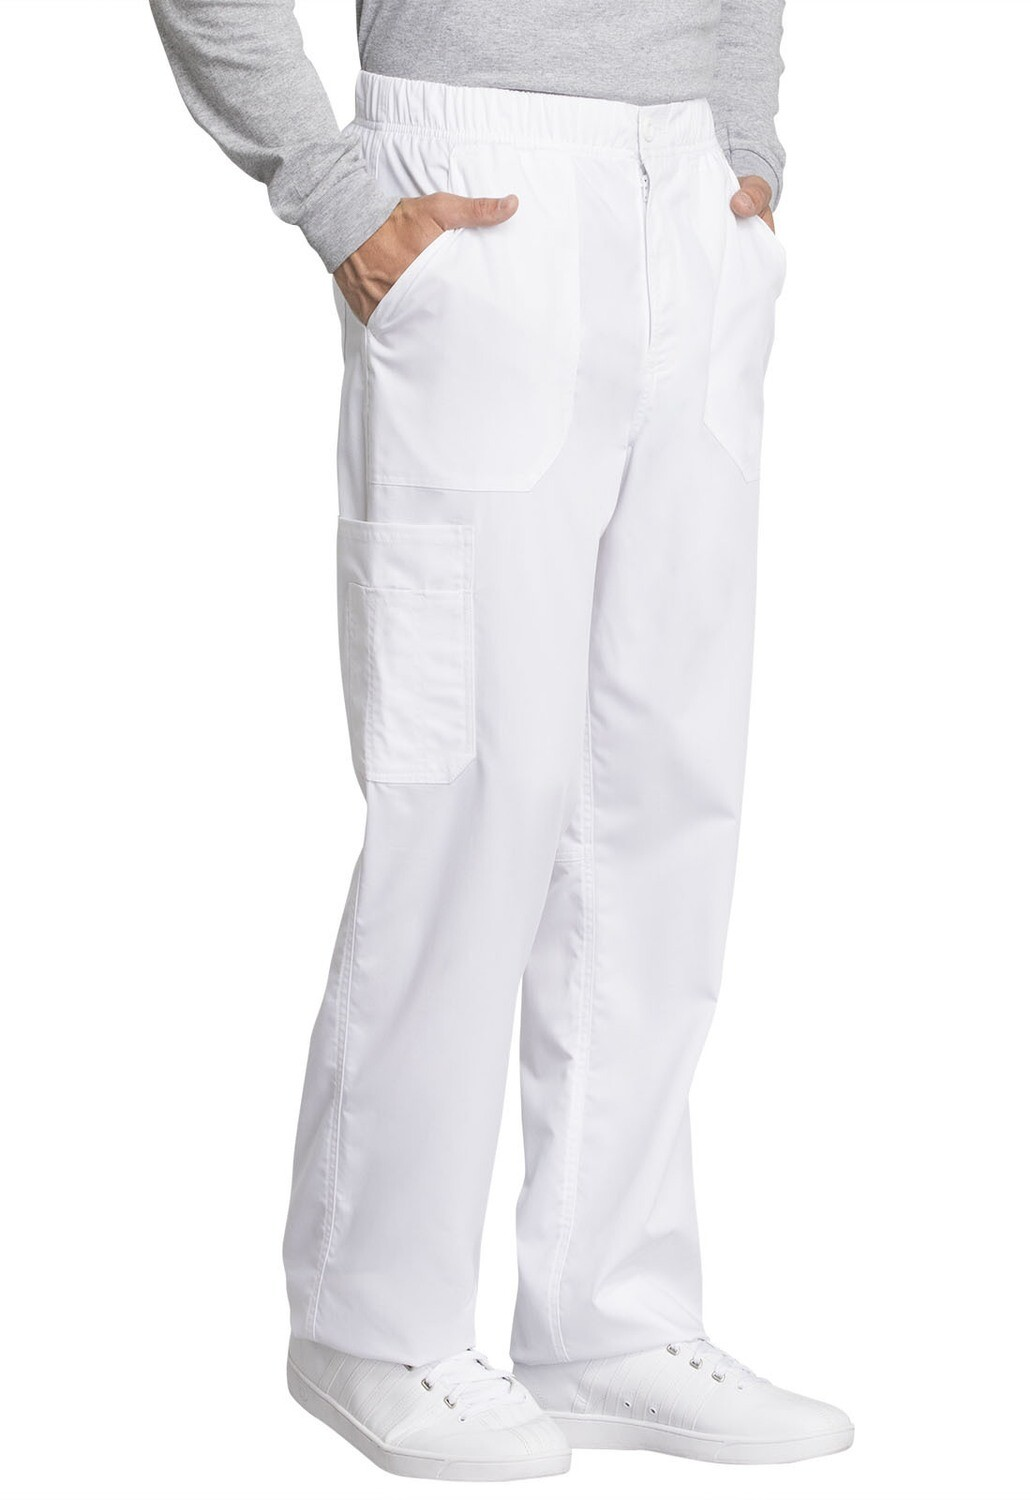 Pantalone CHEROKEE REVOLUTION TECH WW250AB Colore White